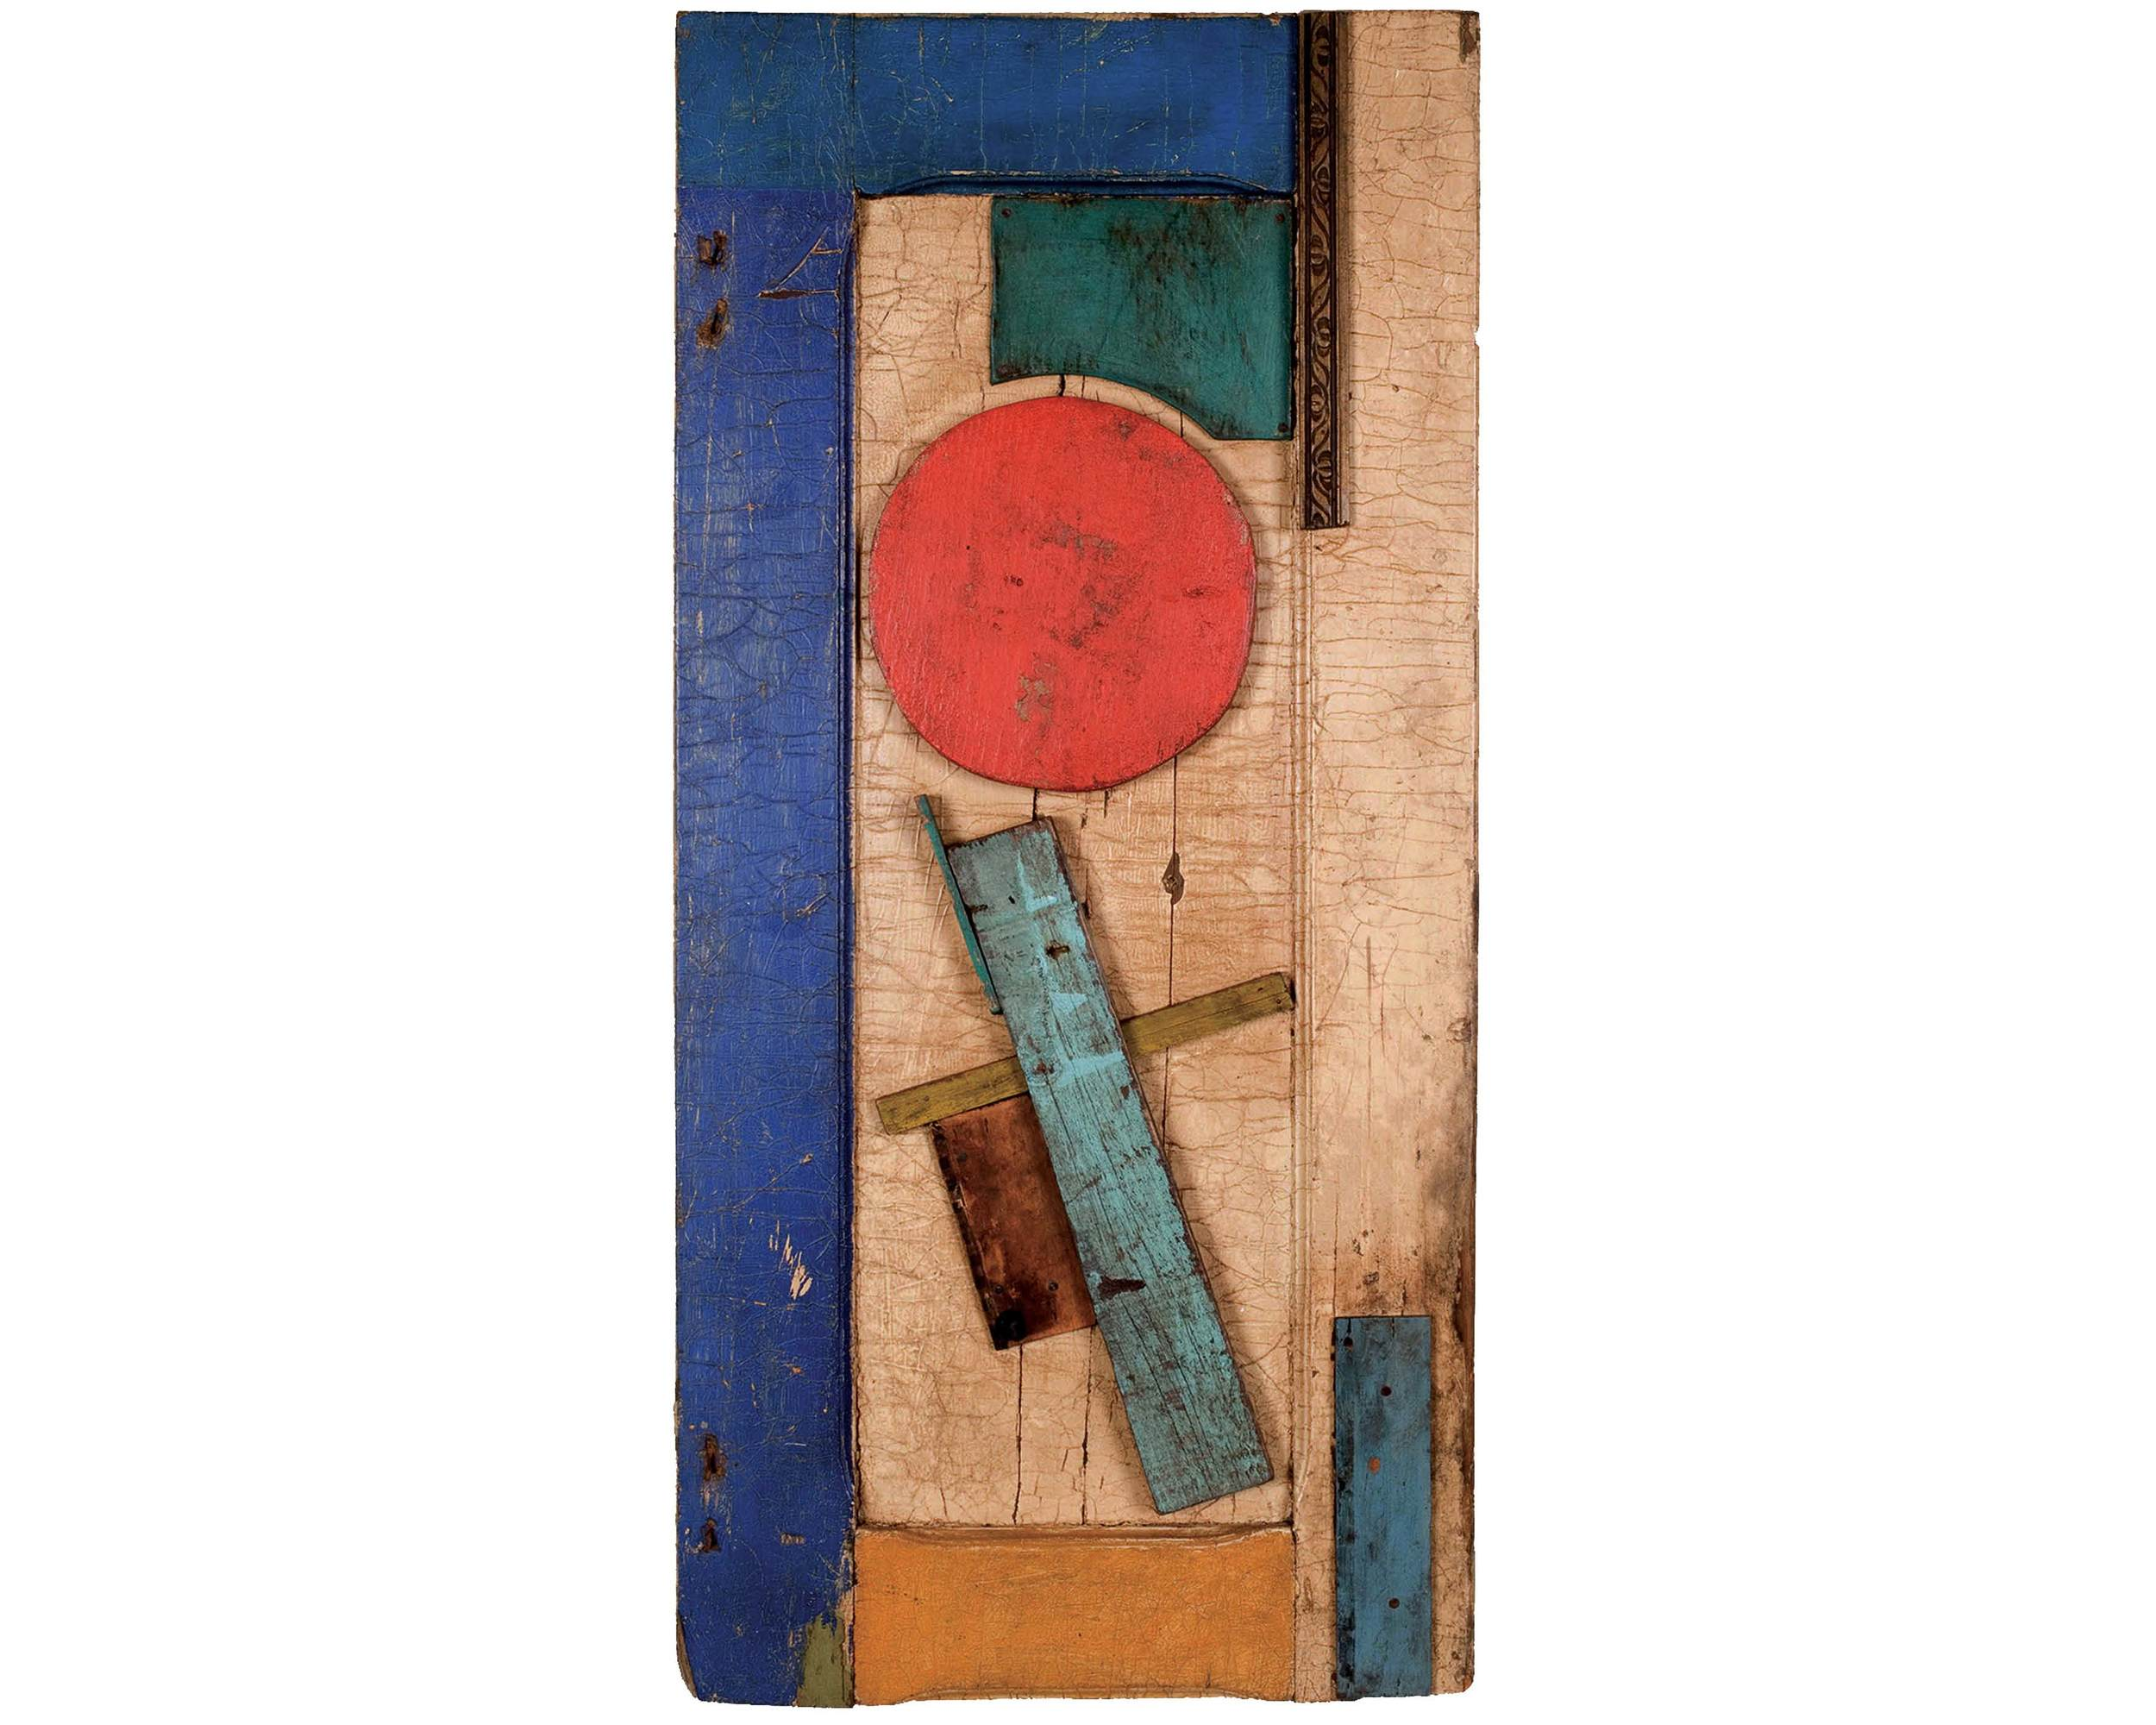 Unattributed. Unsigned.  In the style of Vasilii Ermilov. Construction on wooden plank. 90 x 44 cm.